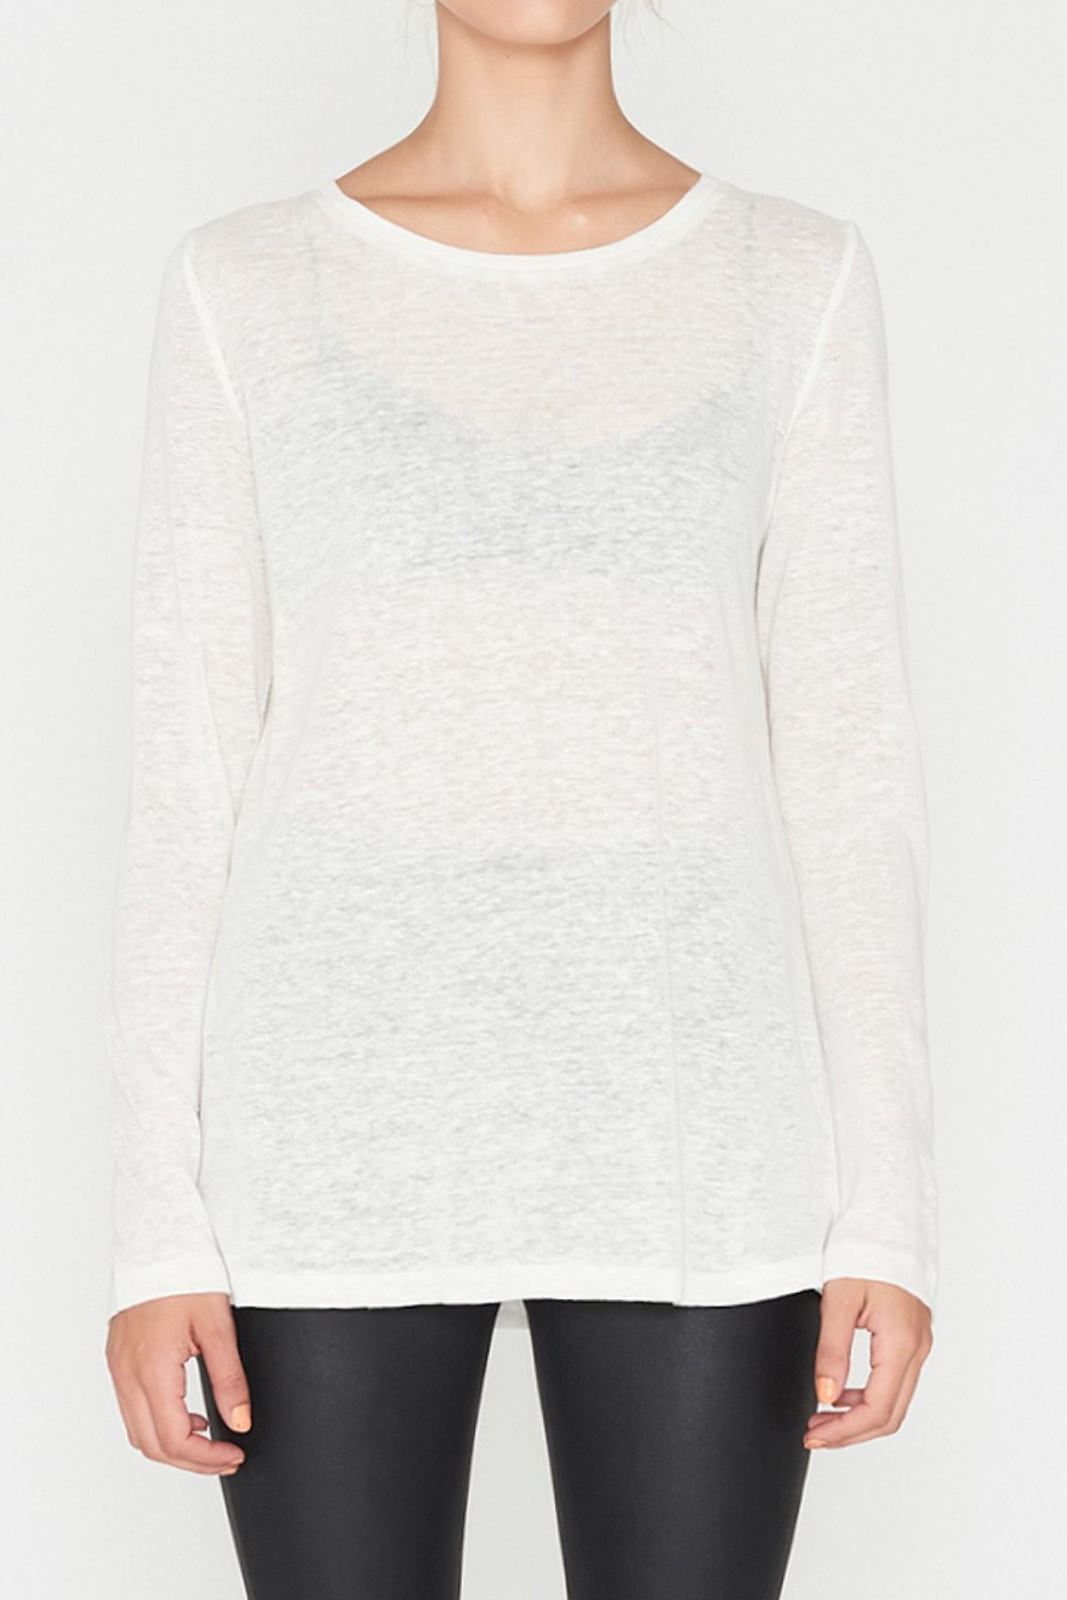 Elka Collective EC Linen L/Slv Tee White  4